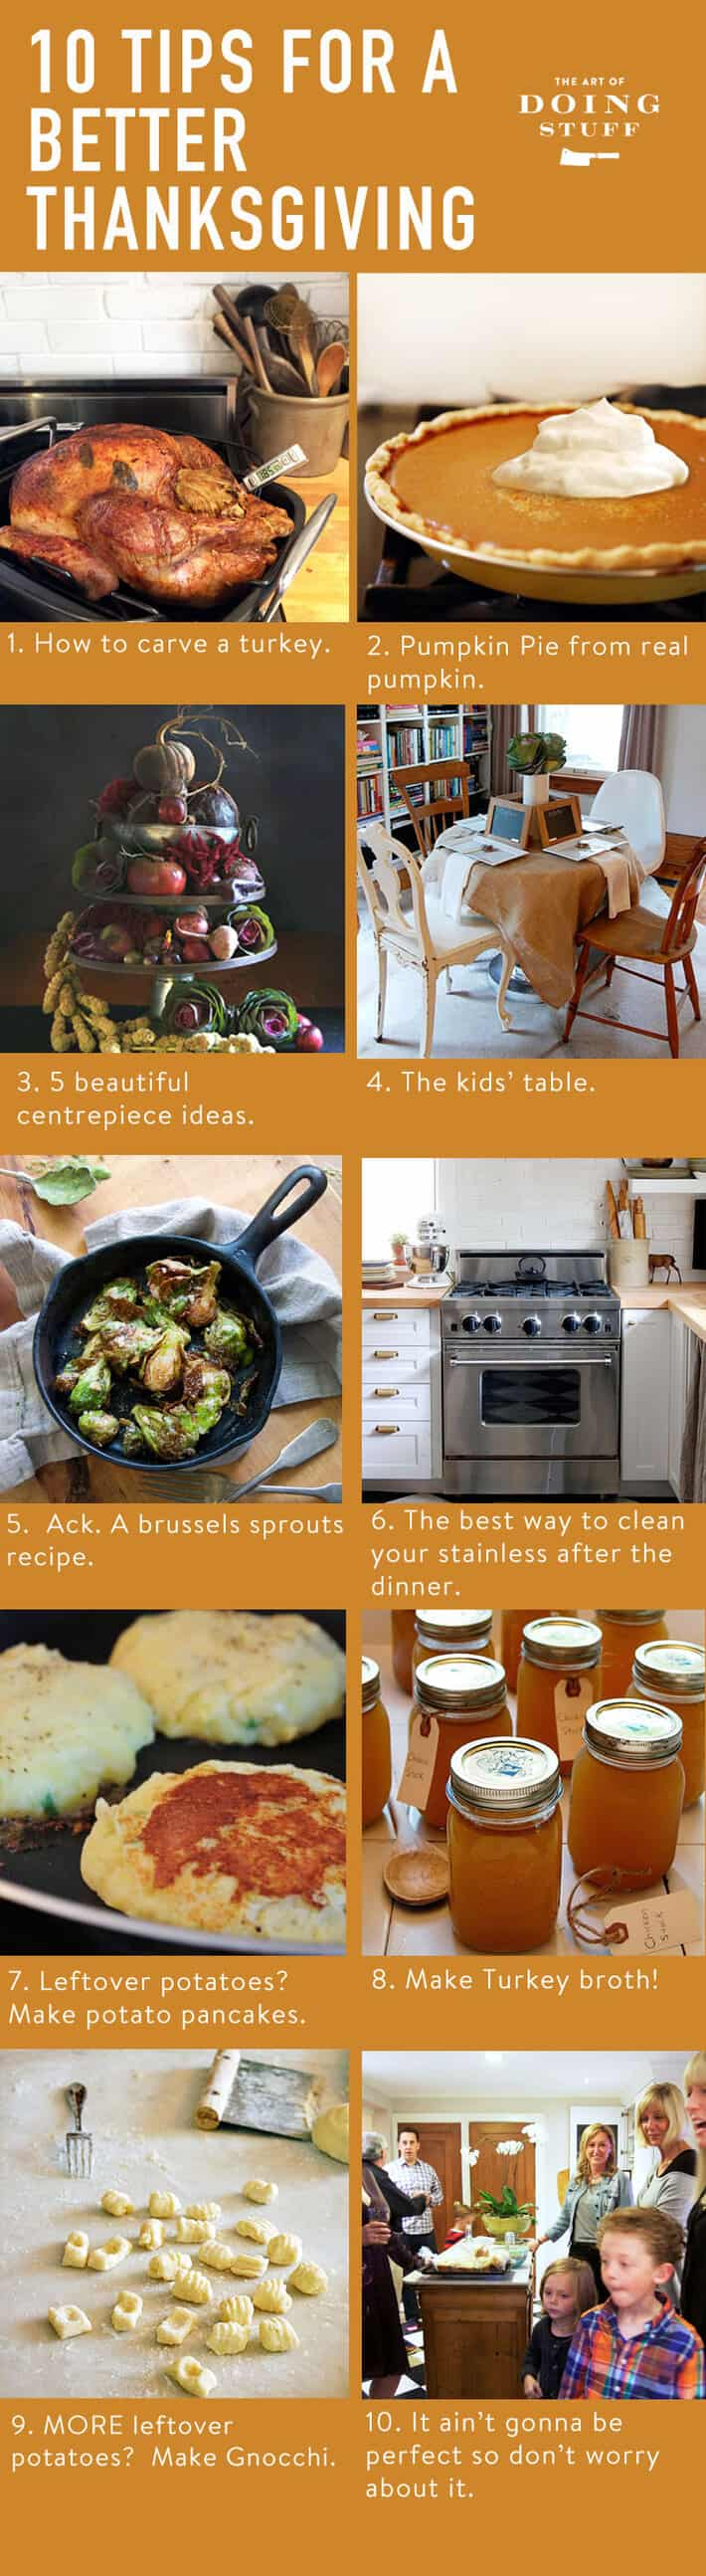 10 best Thanksgiving tips.